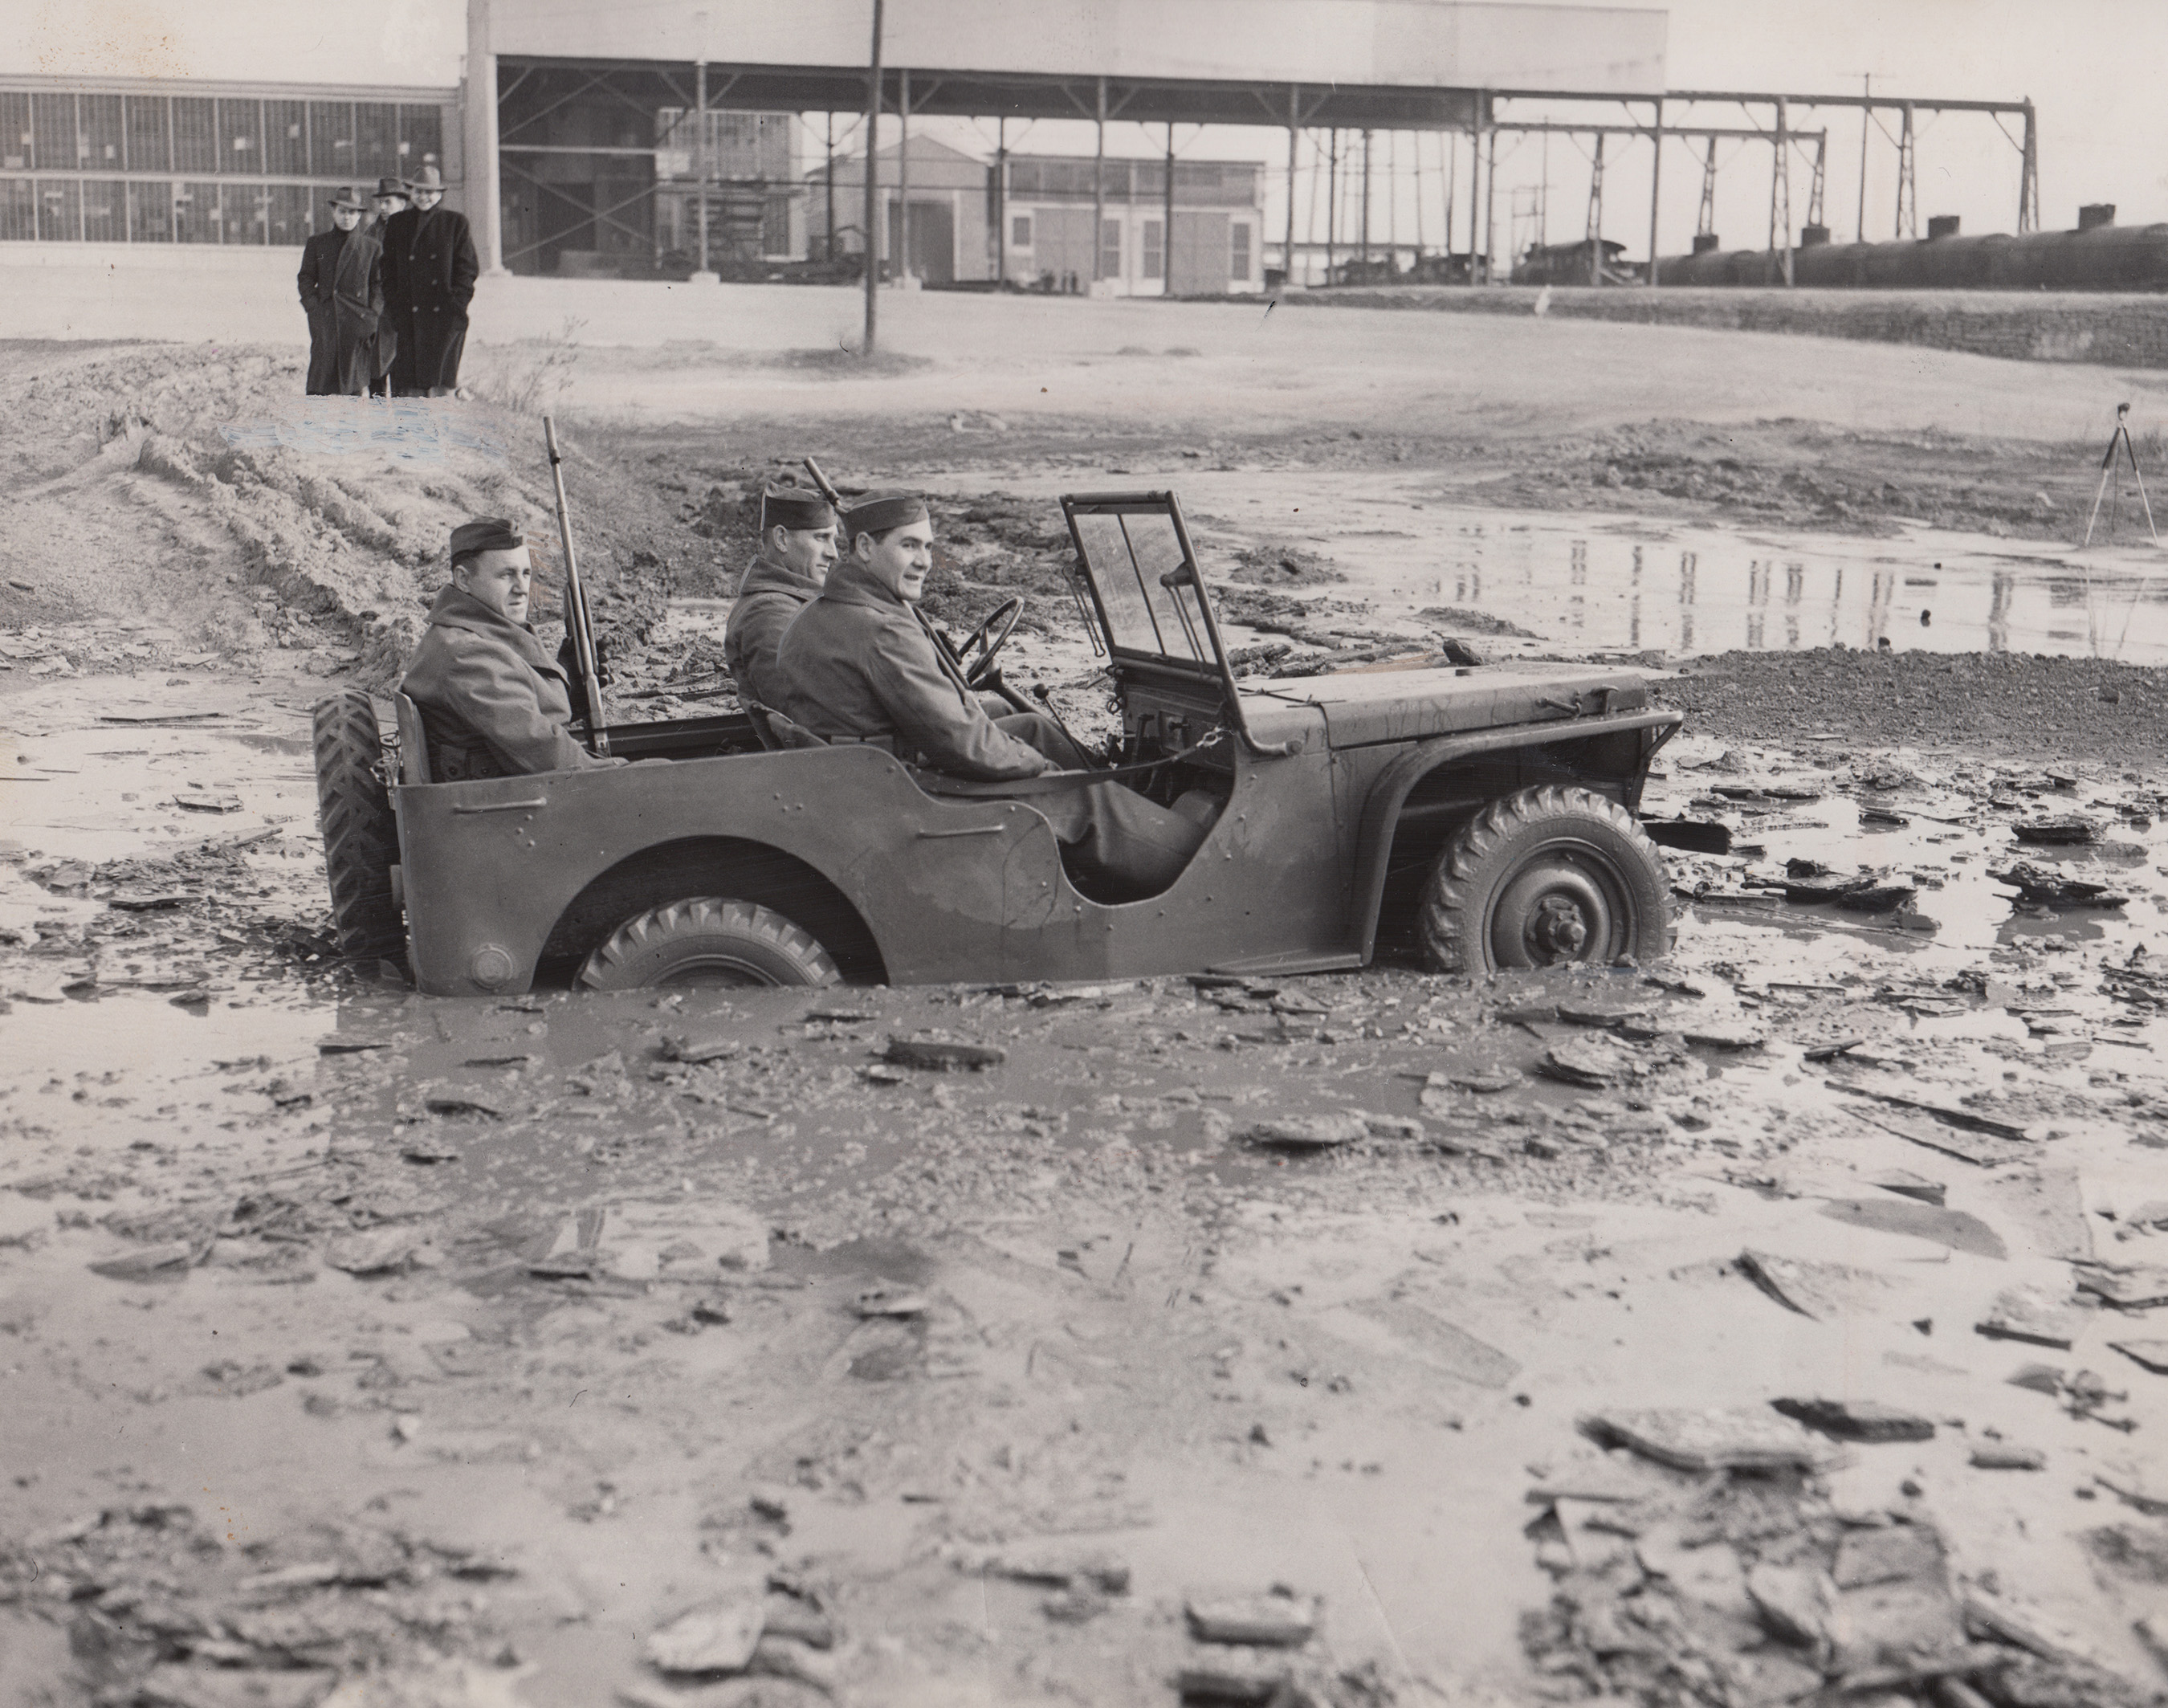 The 1940 Ford Pilot Model GP-No. 1 Pygmy, during initial testing after delivery to the U.S. Army Quartermaster Corps at Camp Holabird in Baltimore on 23 November 1940. (Photo courtesy of the U.S. Veterans Memorial Museum)